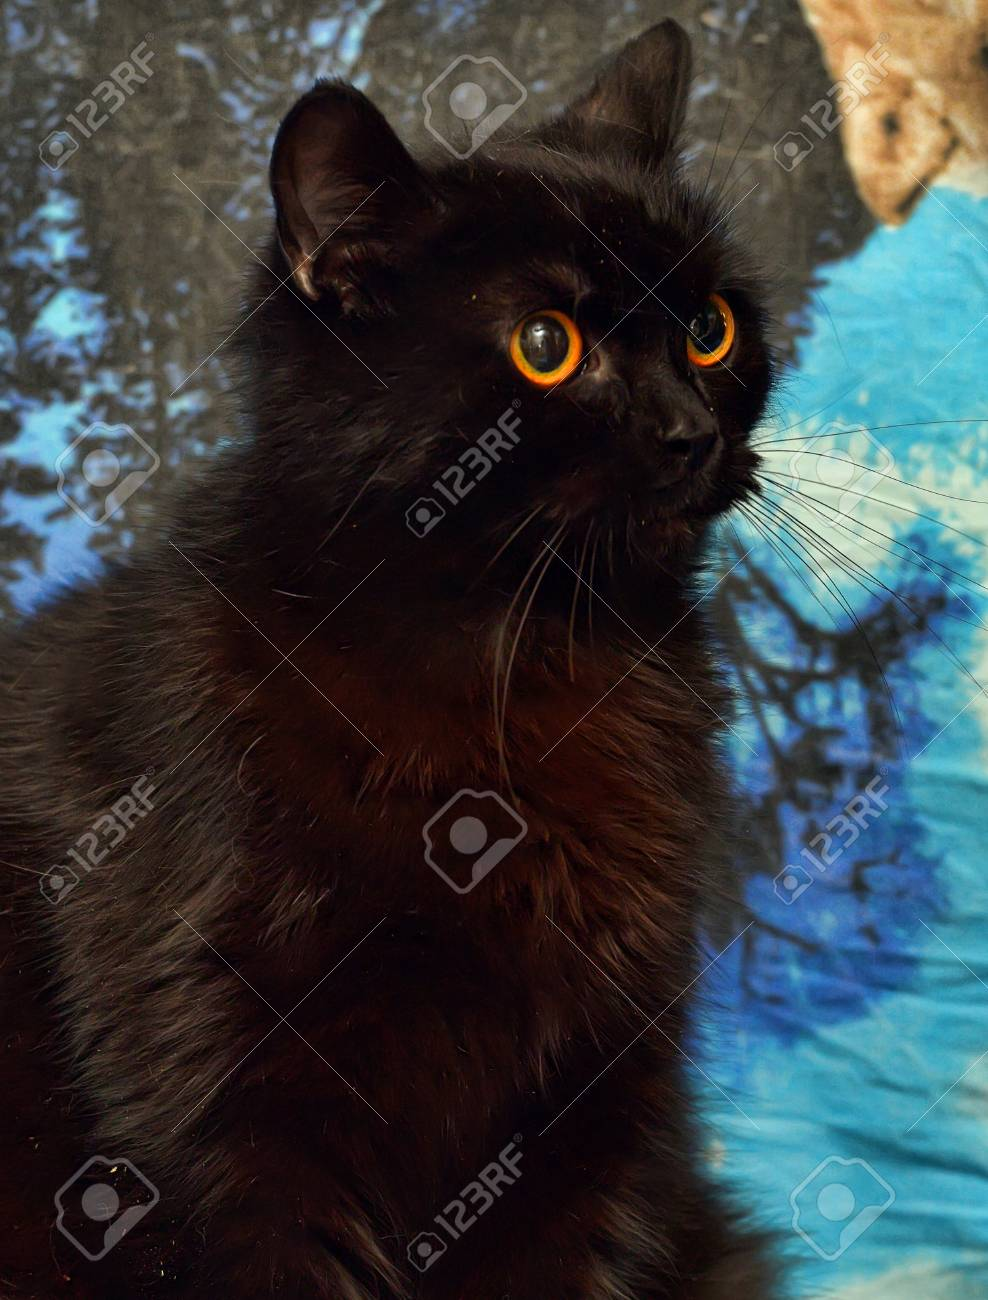 Furry Black Cat With Orange Eyes On A Blue Background Stock Photo Picture And Royalty Free Image Image 109070489